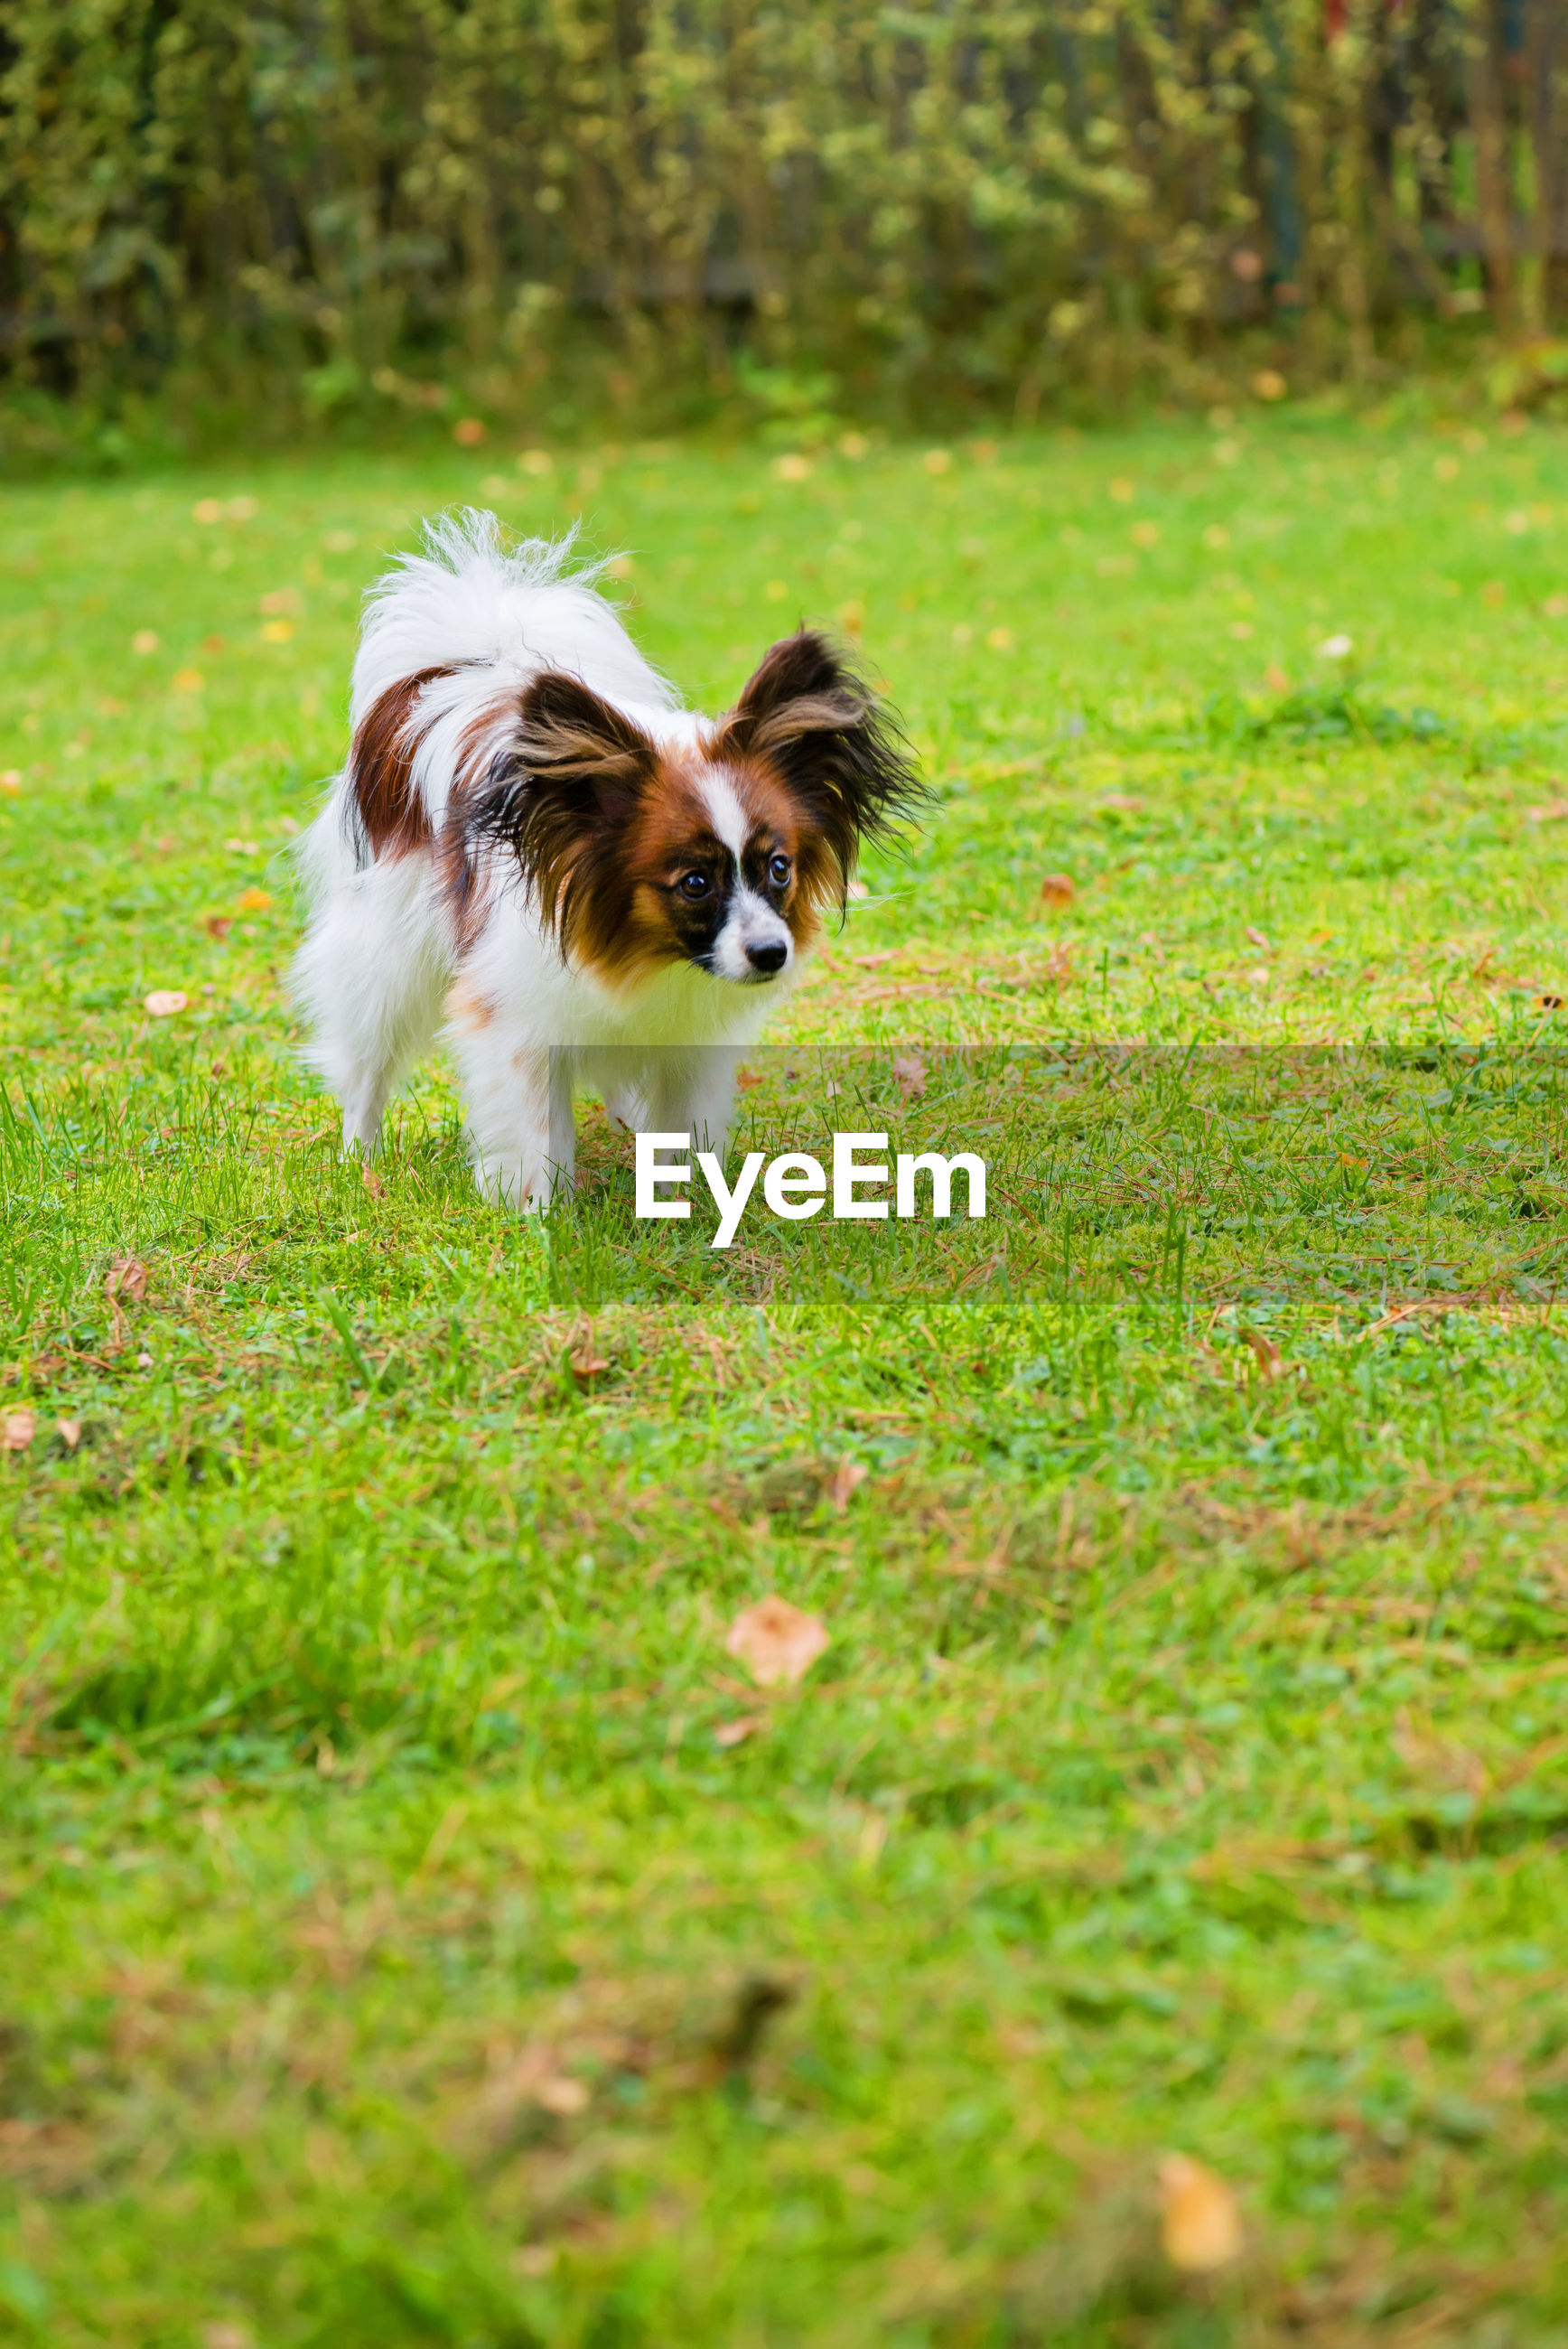 Portrait of a papillon purebreed dog walking on the grass